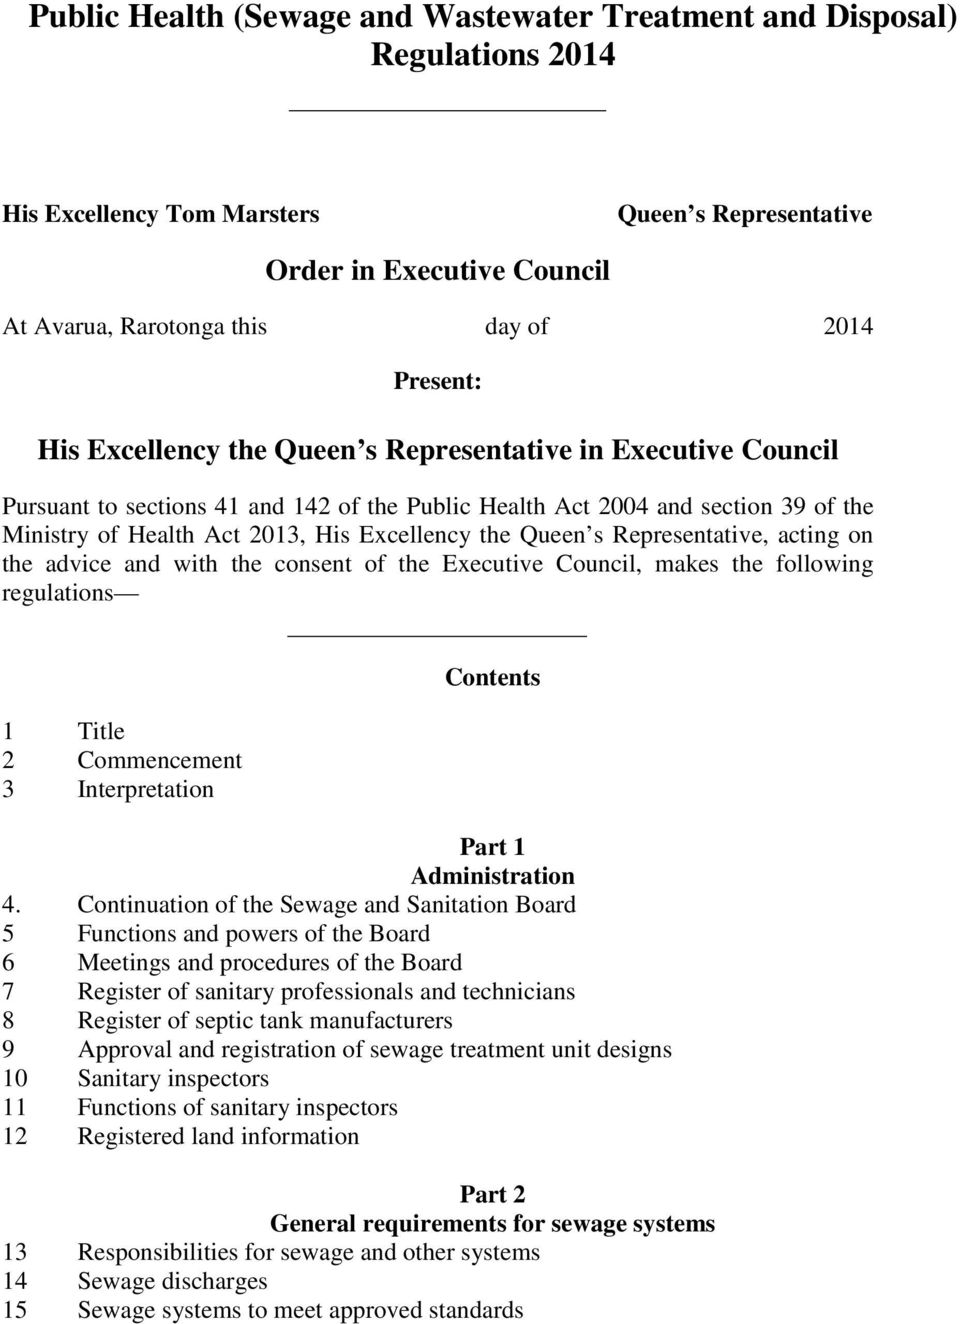 the Queen s Representative, acting on the advice and with the consent of the Executive Council, makes the following regulations 1 Title 2 Commencement 3 Interpretation Contents Part 1 Administration